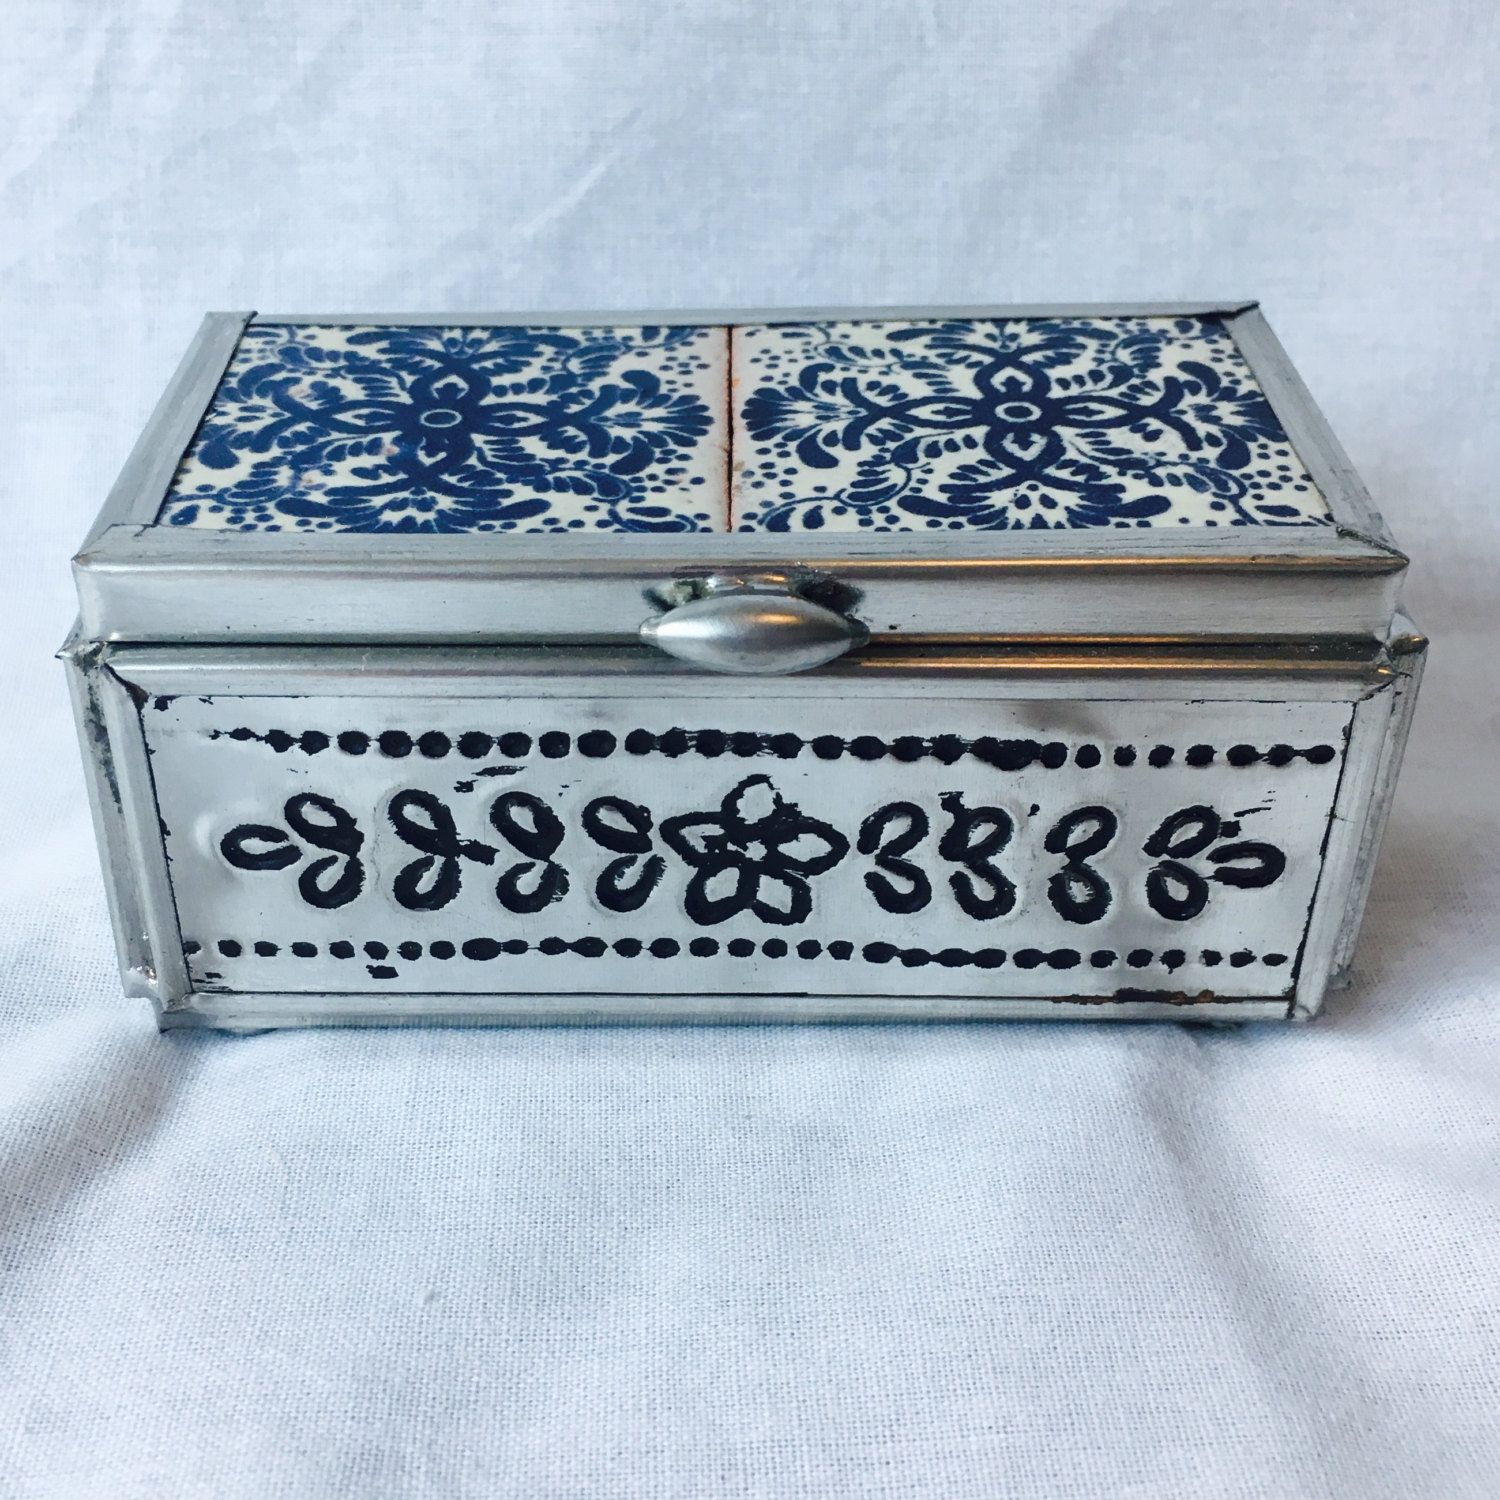 Blue and White Traditional Talavera Tile and Tin Jewelry Box - 2 Tiles with Mirror Inset - FREE SHIPPING! by TexMexFunStuff on Etsy